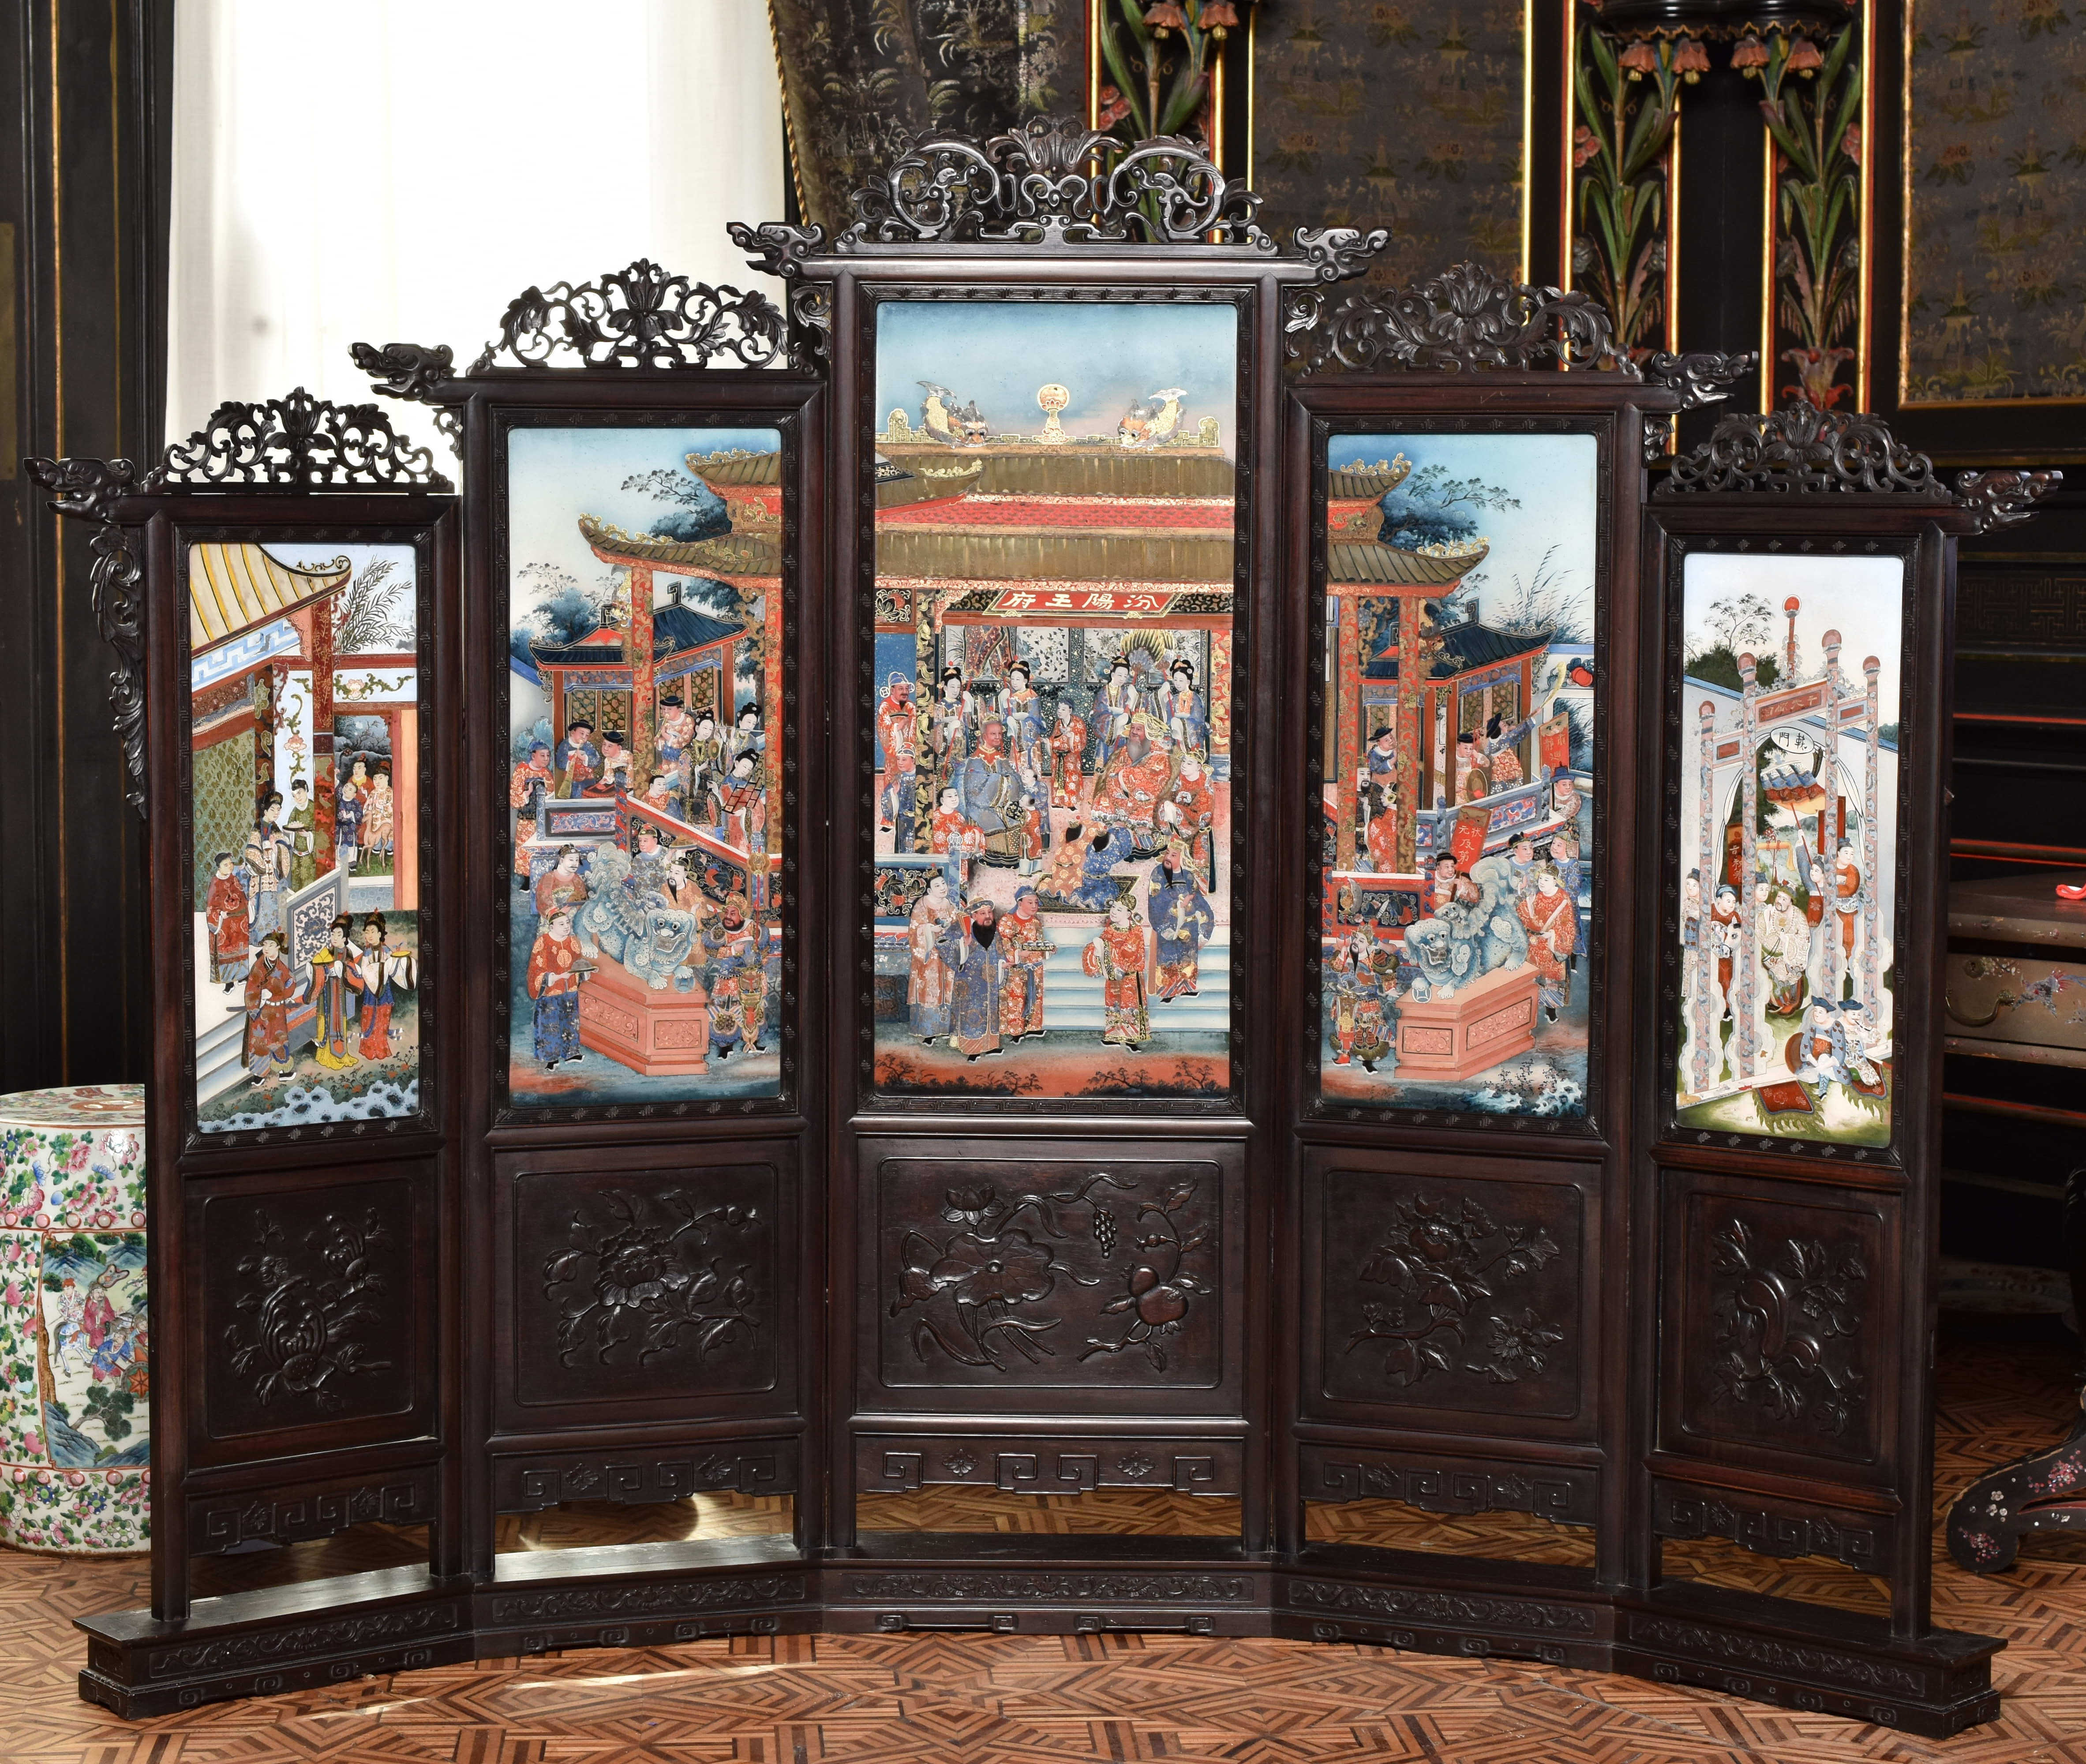 Screen, engraved wood and painted glass, mid-19th century